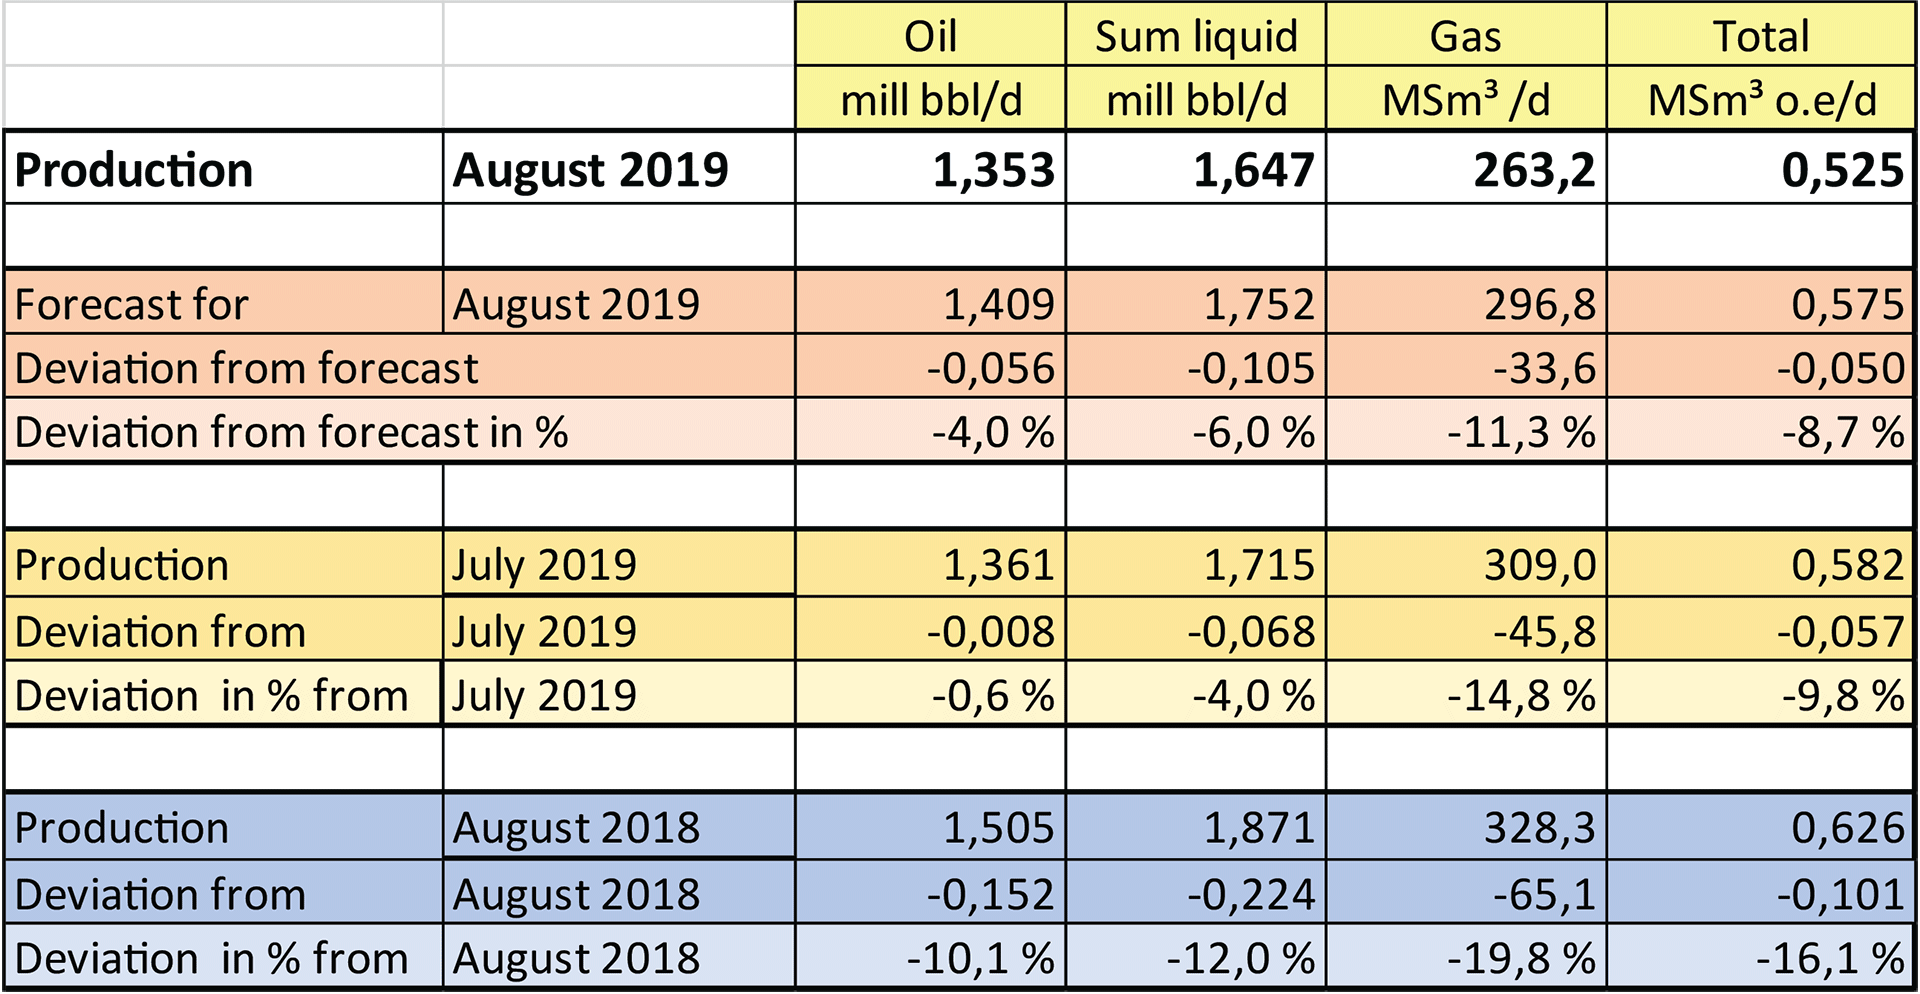 Table showing production of oil and gas for August 2019